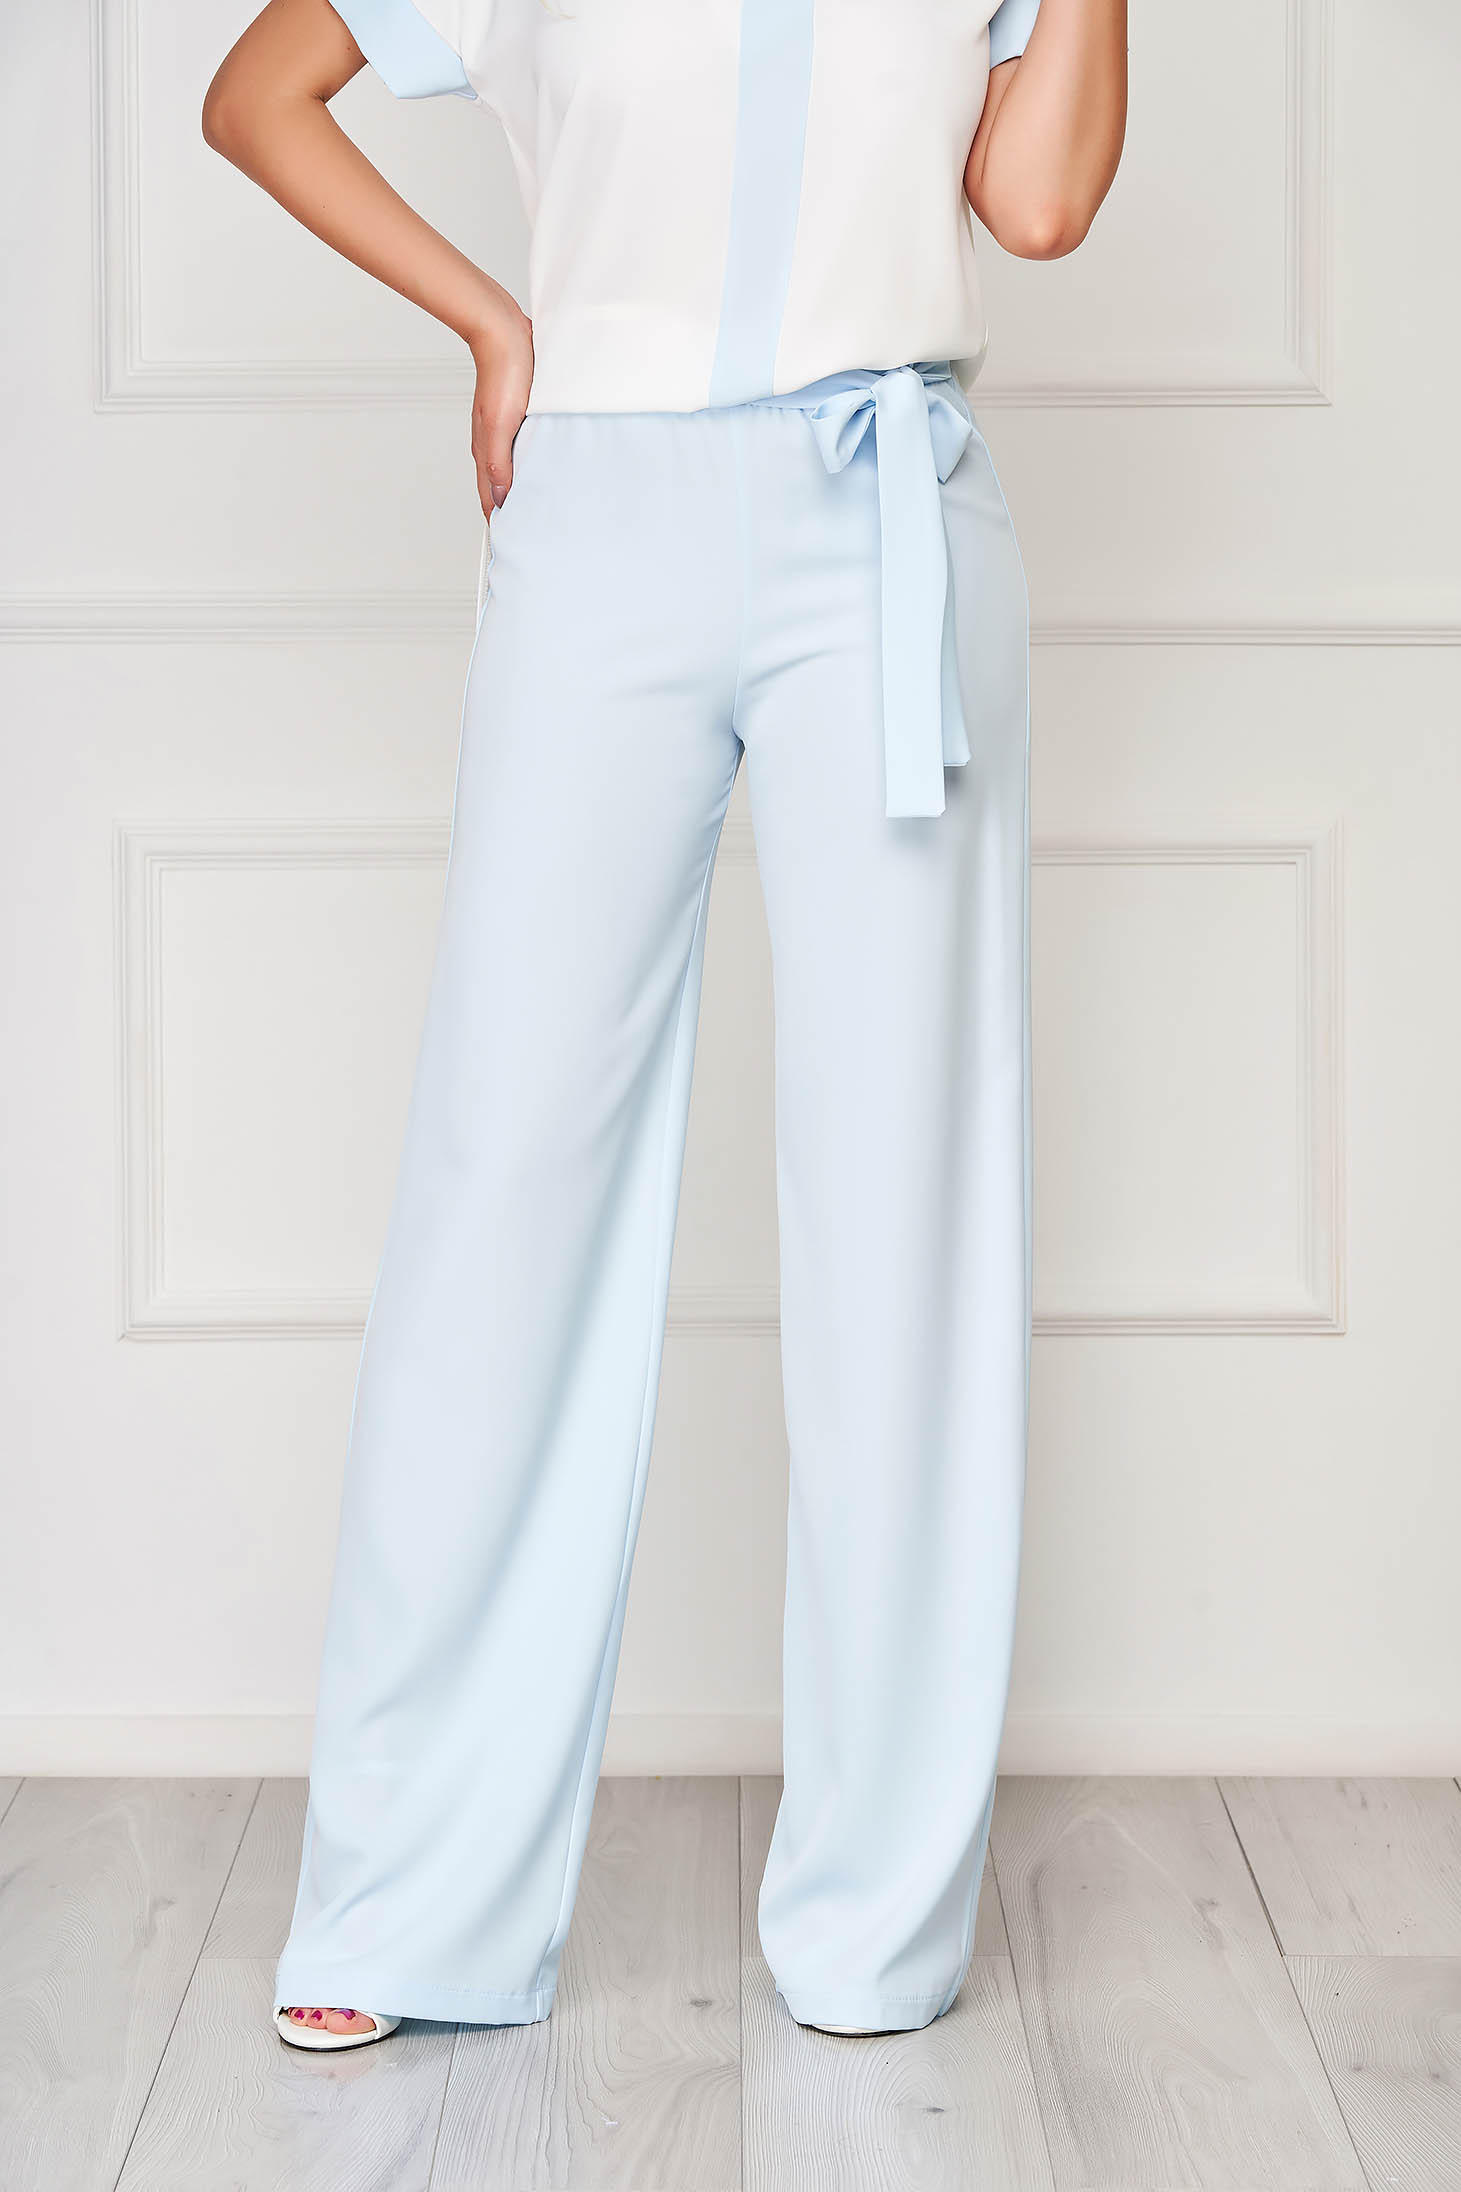 StarShinerS elegant accessorized with tied waistband lightblue trousers slightly elastic fabric high waisted flared